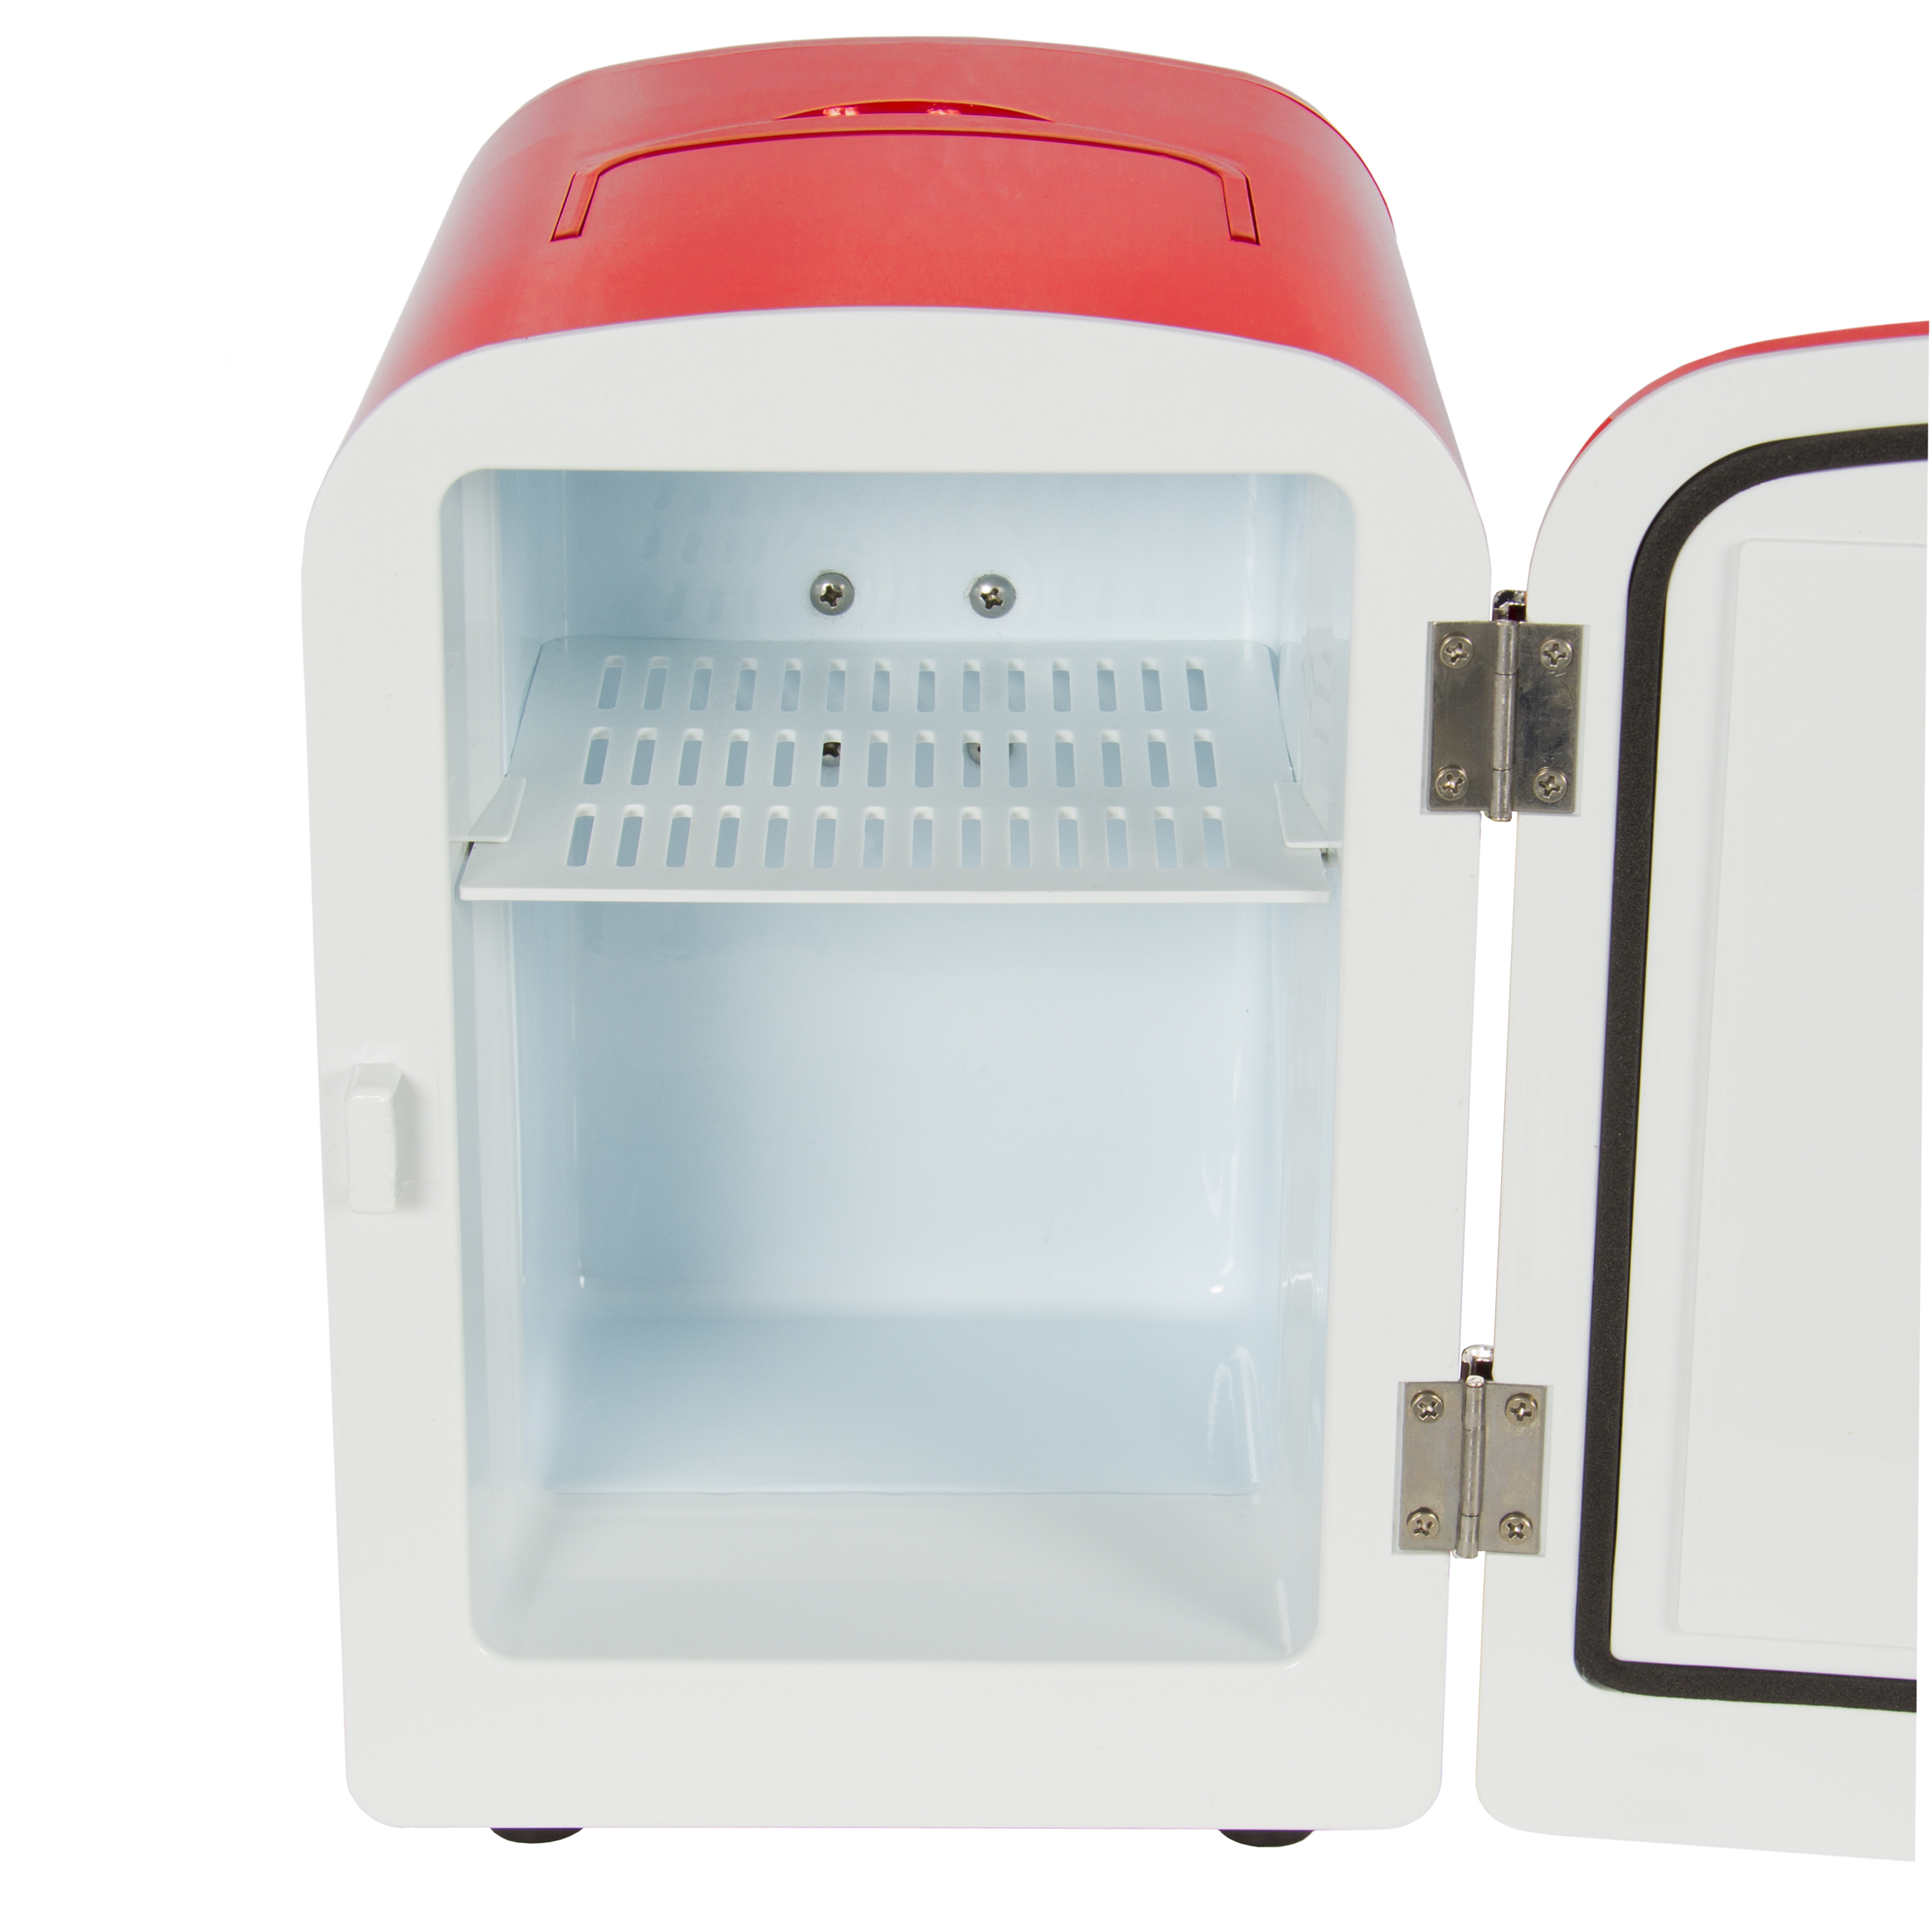 Small Portable Fridge Best Choice Products Portable Auto Mini Fridge Cooler And Warmer W Ac And Dc For Car Boat Home Office Red